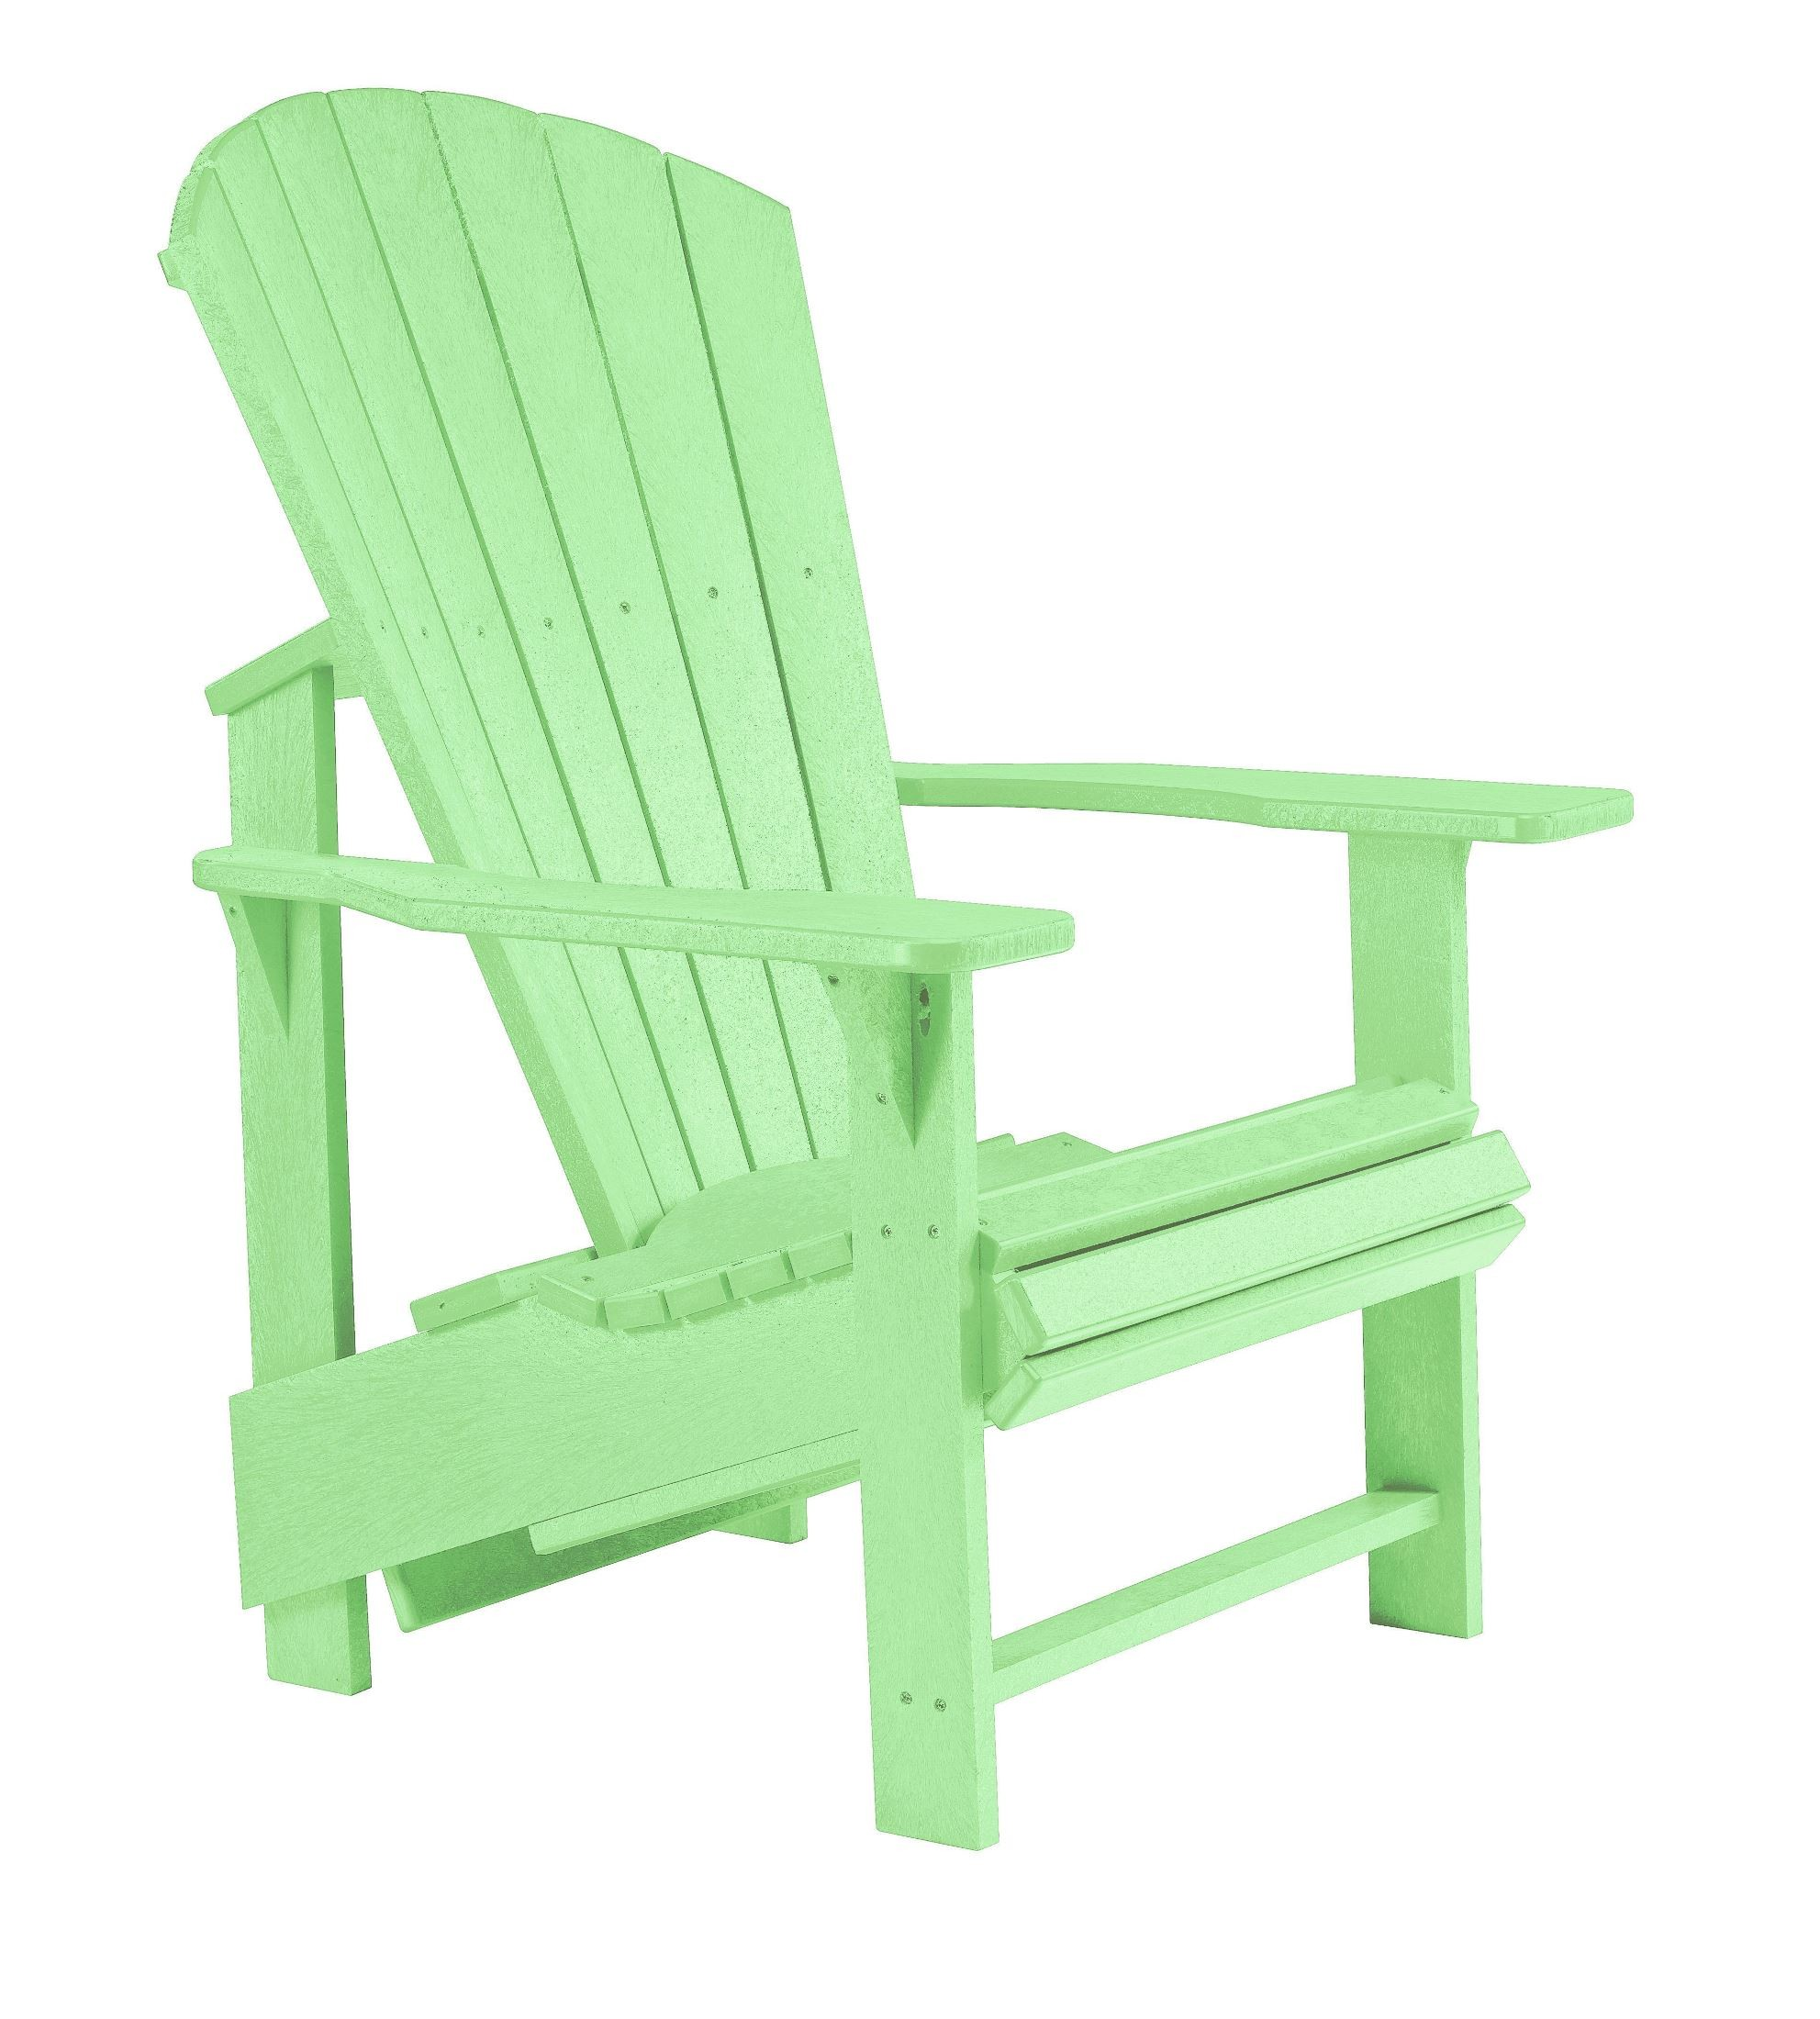 lime green chairs for sale how to make a chair cover wedding generations upright adirondack from cr